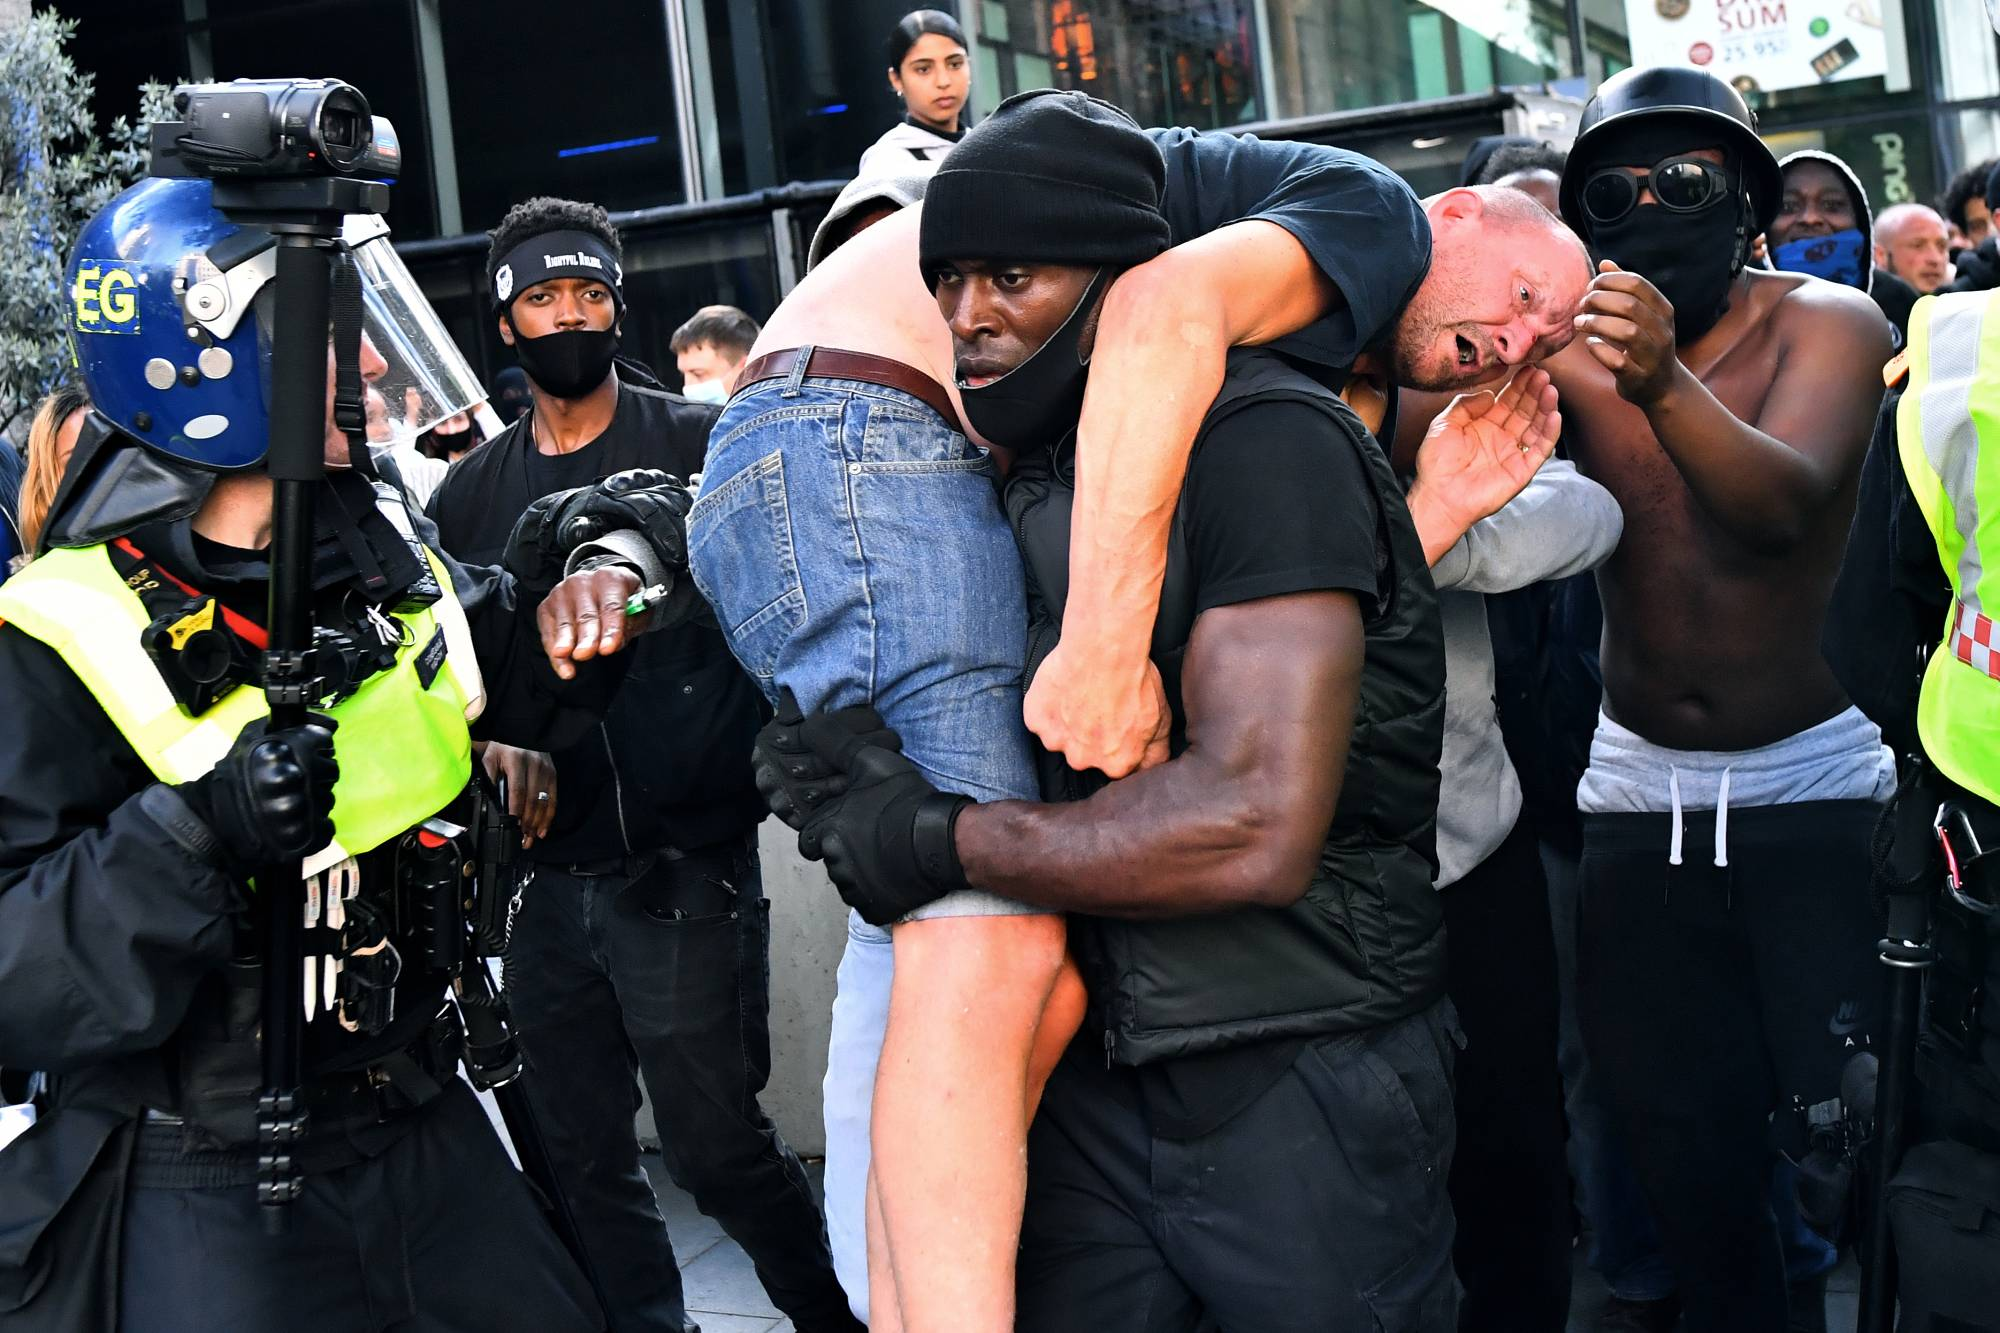 Patrick Hutchinson, a protester, carries an injured suspected far-right counterprotester to safety near Waterloo Station in London on Saturday during a Black Lives Matter protest following the death of George Floyd in Minneapolis police custody.  | REUTERS